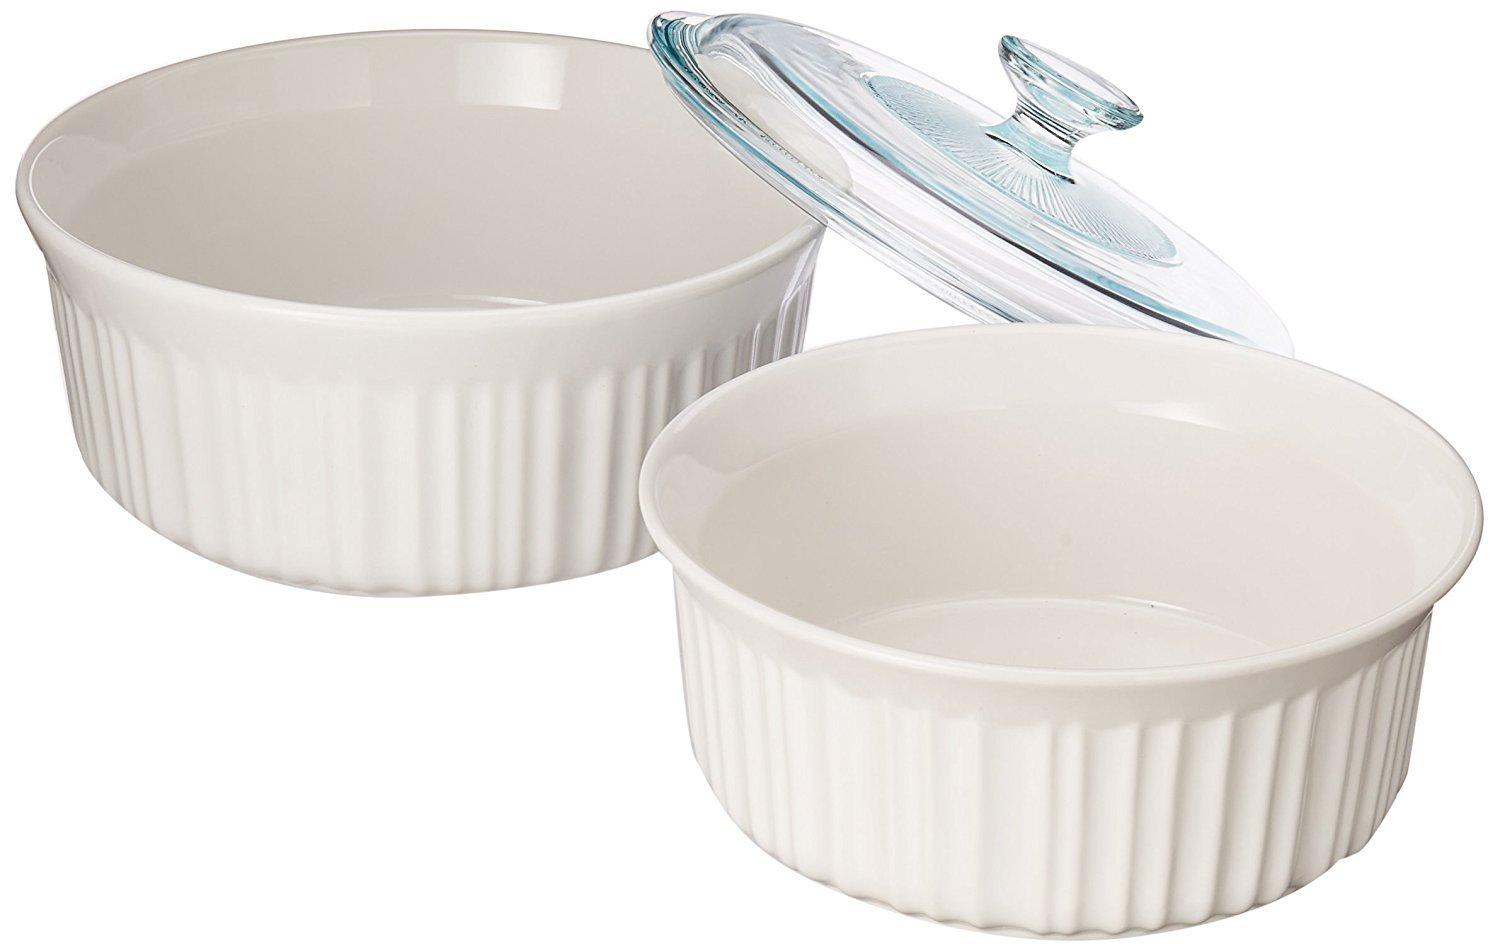 Corningware White Casserole Dish with Lid - set